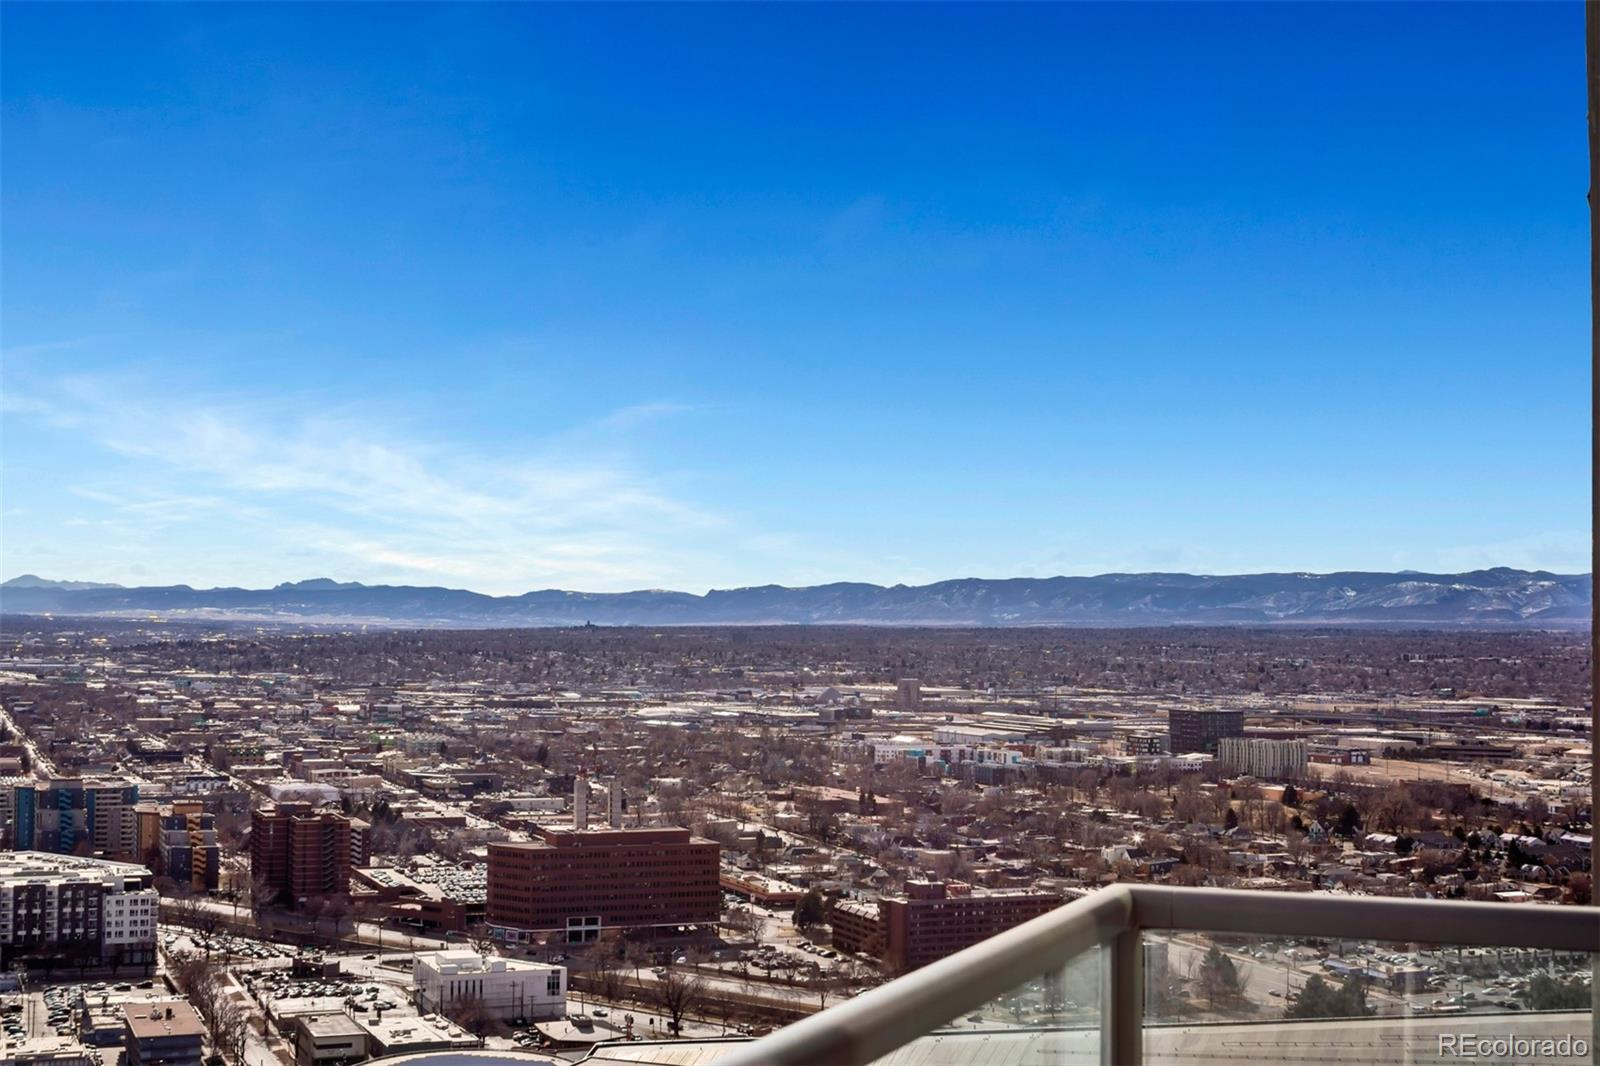 Location Location! Views! Mountain and Downtown! Urban Contemporary* Your Dream of living in the Heart of Downtown in the Prestigious Spire Building is here!! Two bedroom, Two Bath on the 35th floor with parking space and storage! The floor-to-ceiling windows frame from Downtown to the Mountains*Gorgeous features including wood floors, trendy cabinetry, stainless steel appliances, granite countertops and a five-piece master bath with walk-in closet*Frosted glass window at second bedroom recently installed for added privacy*The building amenities are amazing and only the upper floors have access to the coveted SkyClub on the 42nd floor*9th and 10th floors have Club rooms with a Theatre, Pool Table, 2 Pools, Hot tub and more* Super location in the Theater District, across from the Convention Center and the Denver Performing Arts buildings, Close proximity to all of the hot spots in Larimer Square, LoDo, Pepsi Center, Cherry Creek bike path, and the 16th Street Mall. RTD Light Rail and Bus stations are a block away*Fantastic Opportunity*